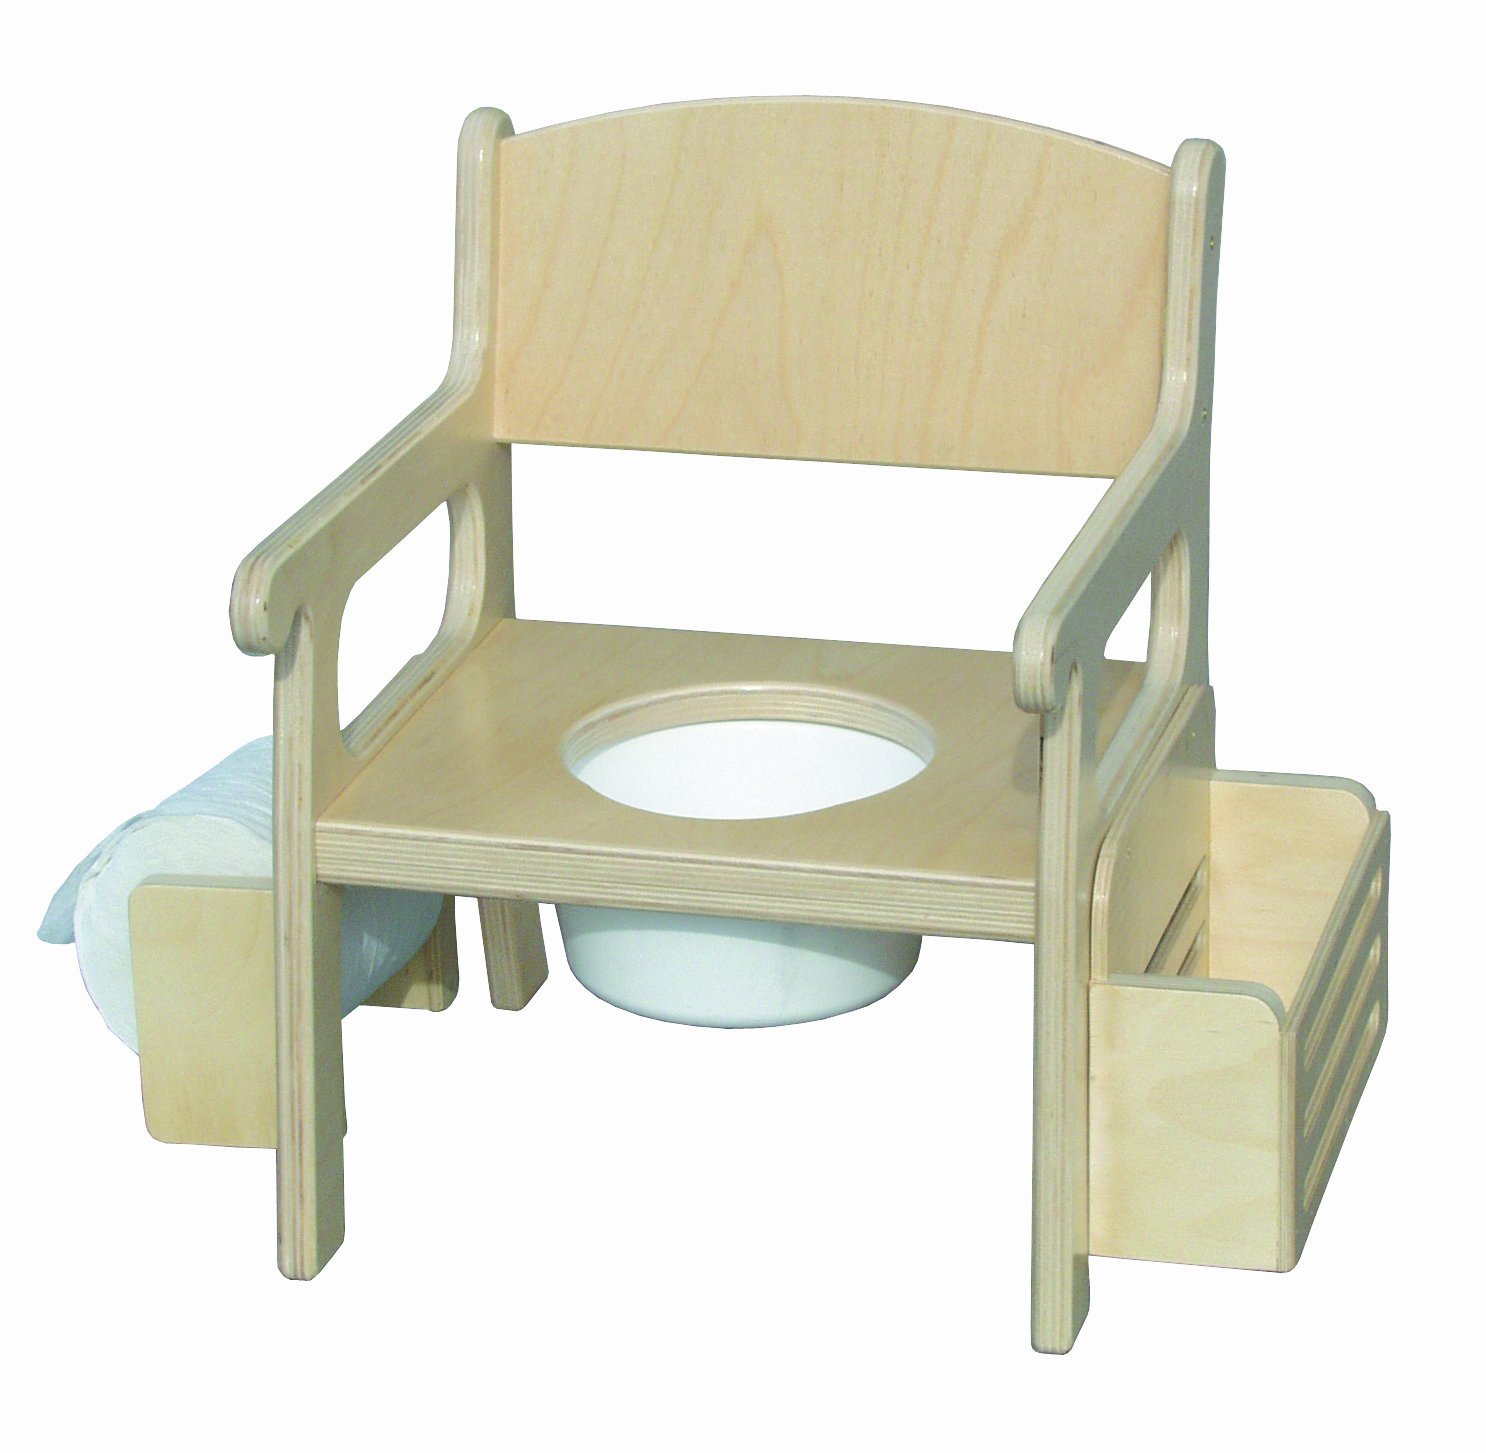 Little Colorado Soft Pink Potty Chair with Accessories